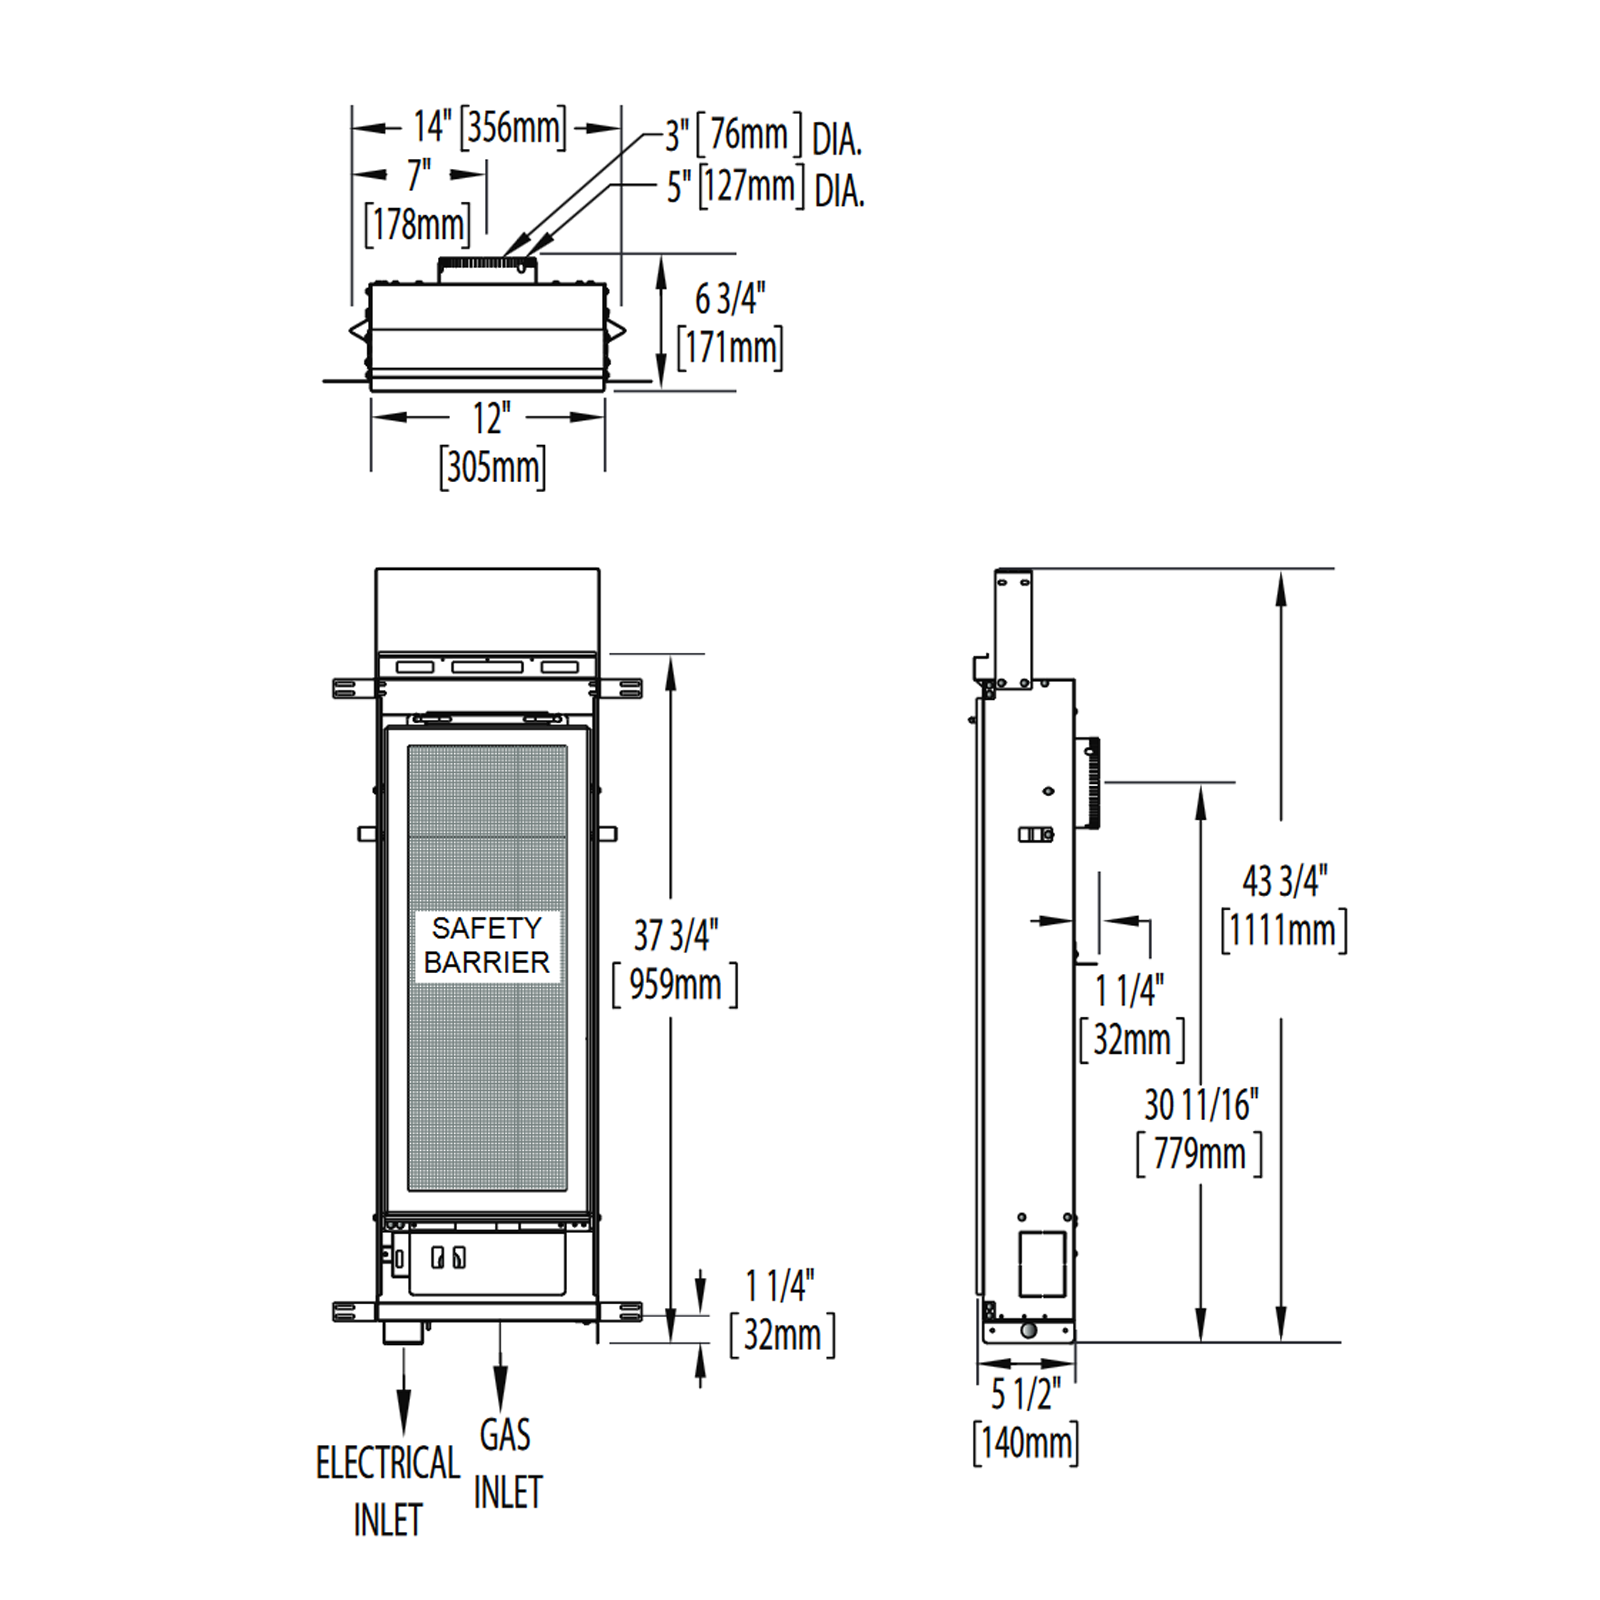 GT8N Technical Drawing 1